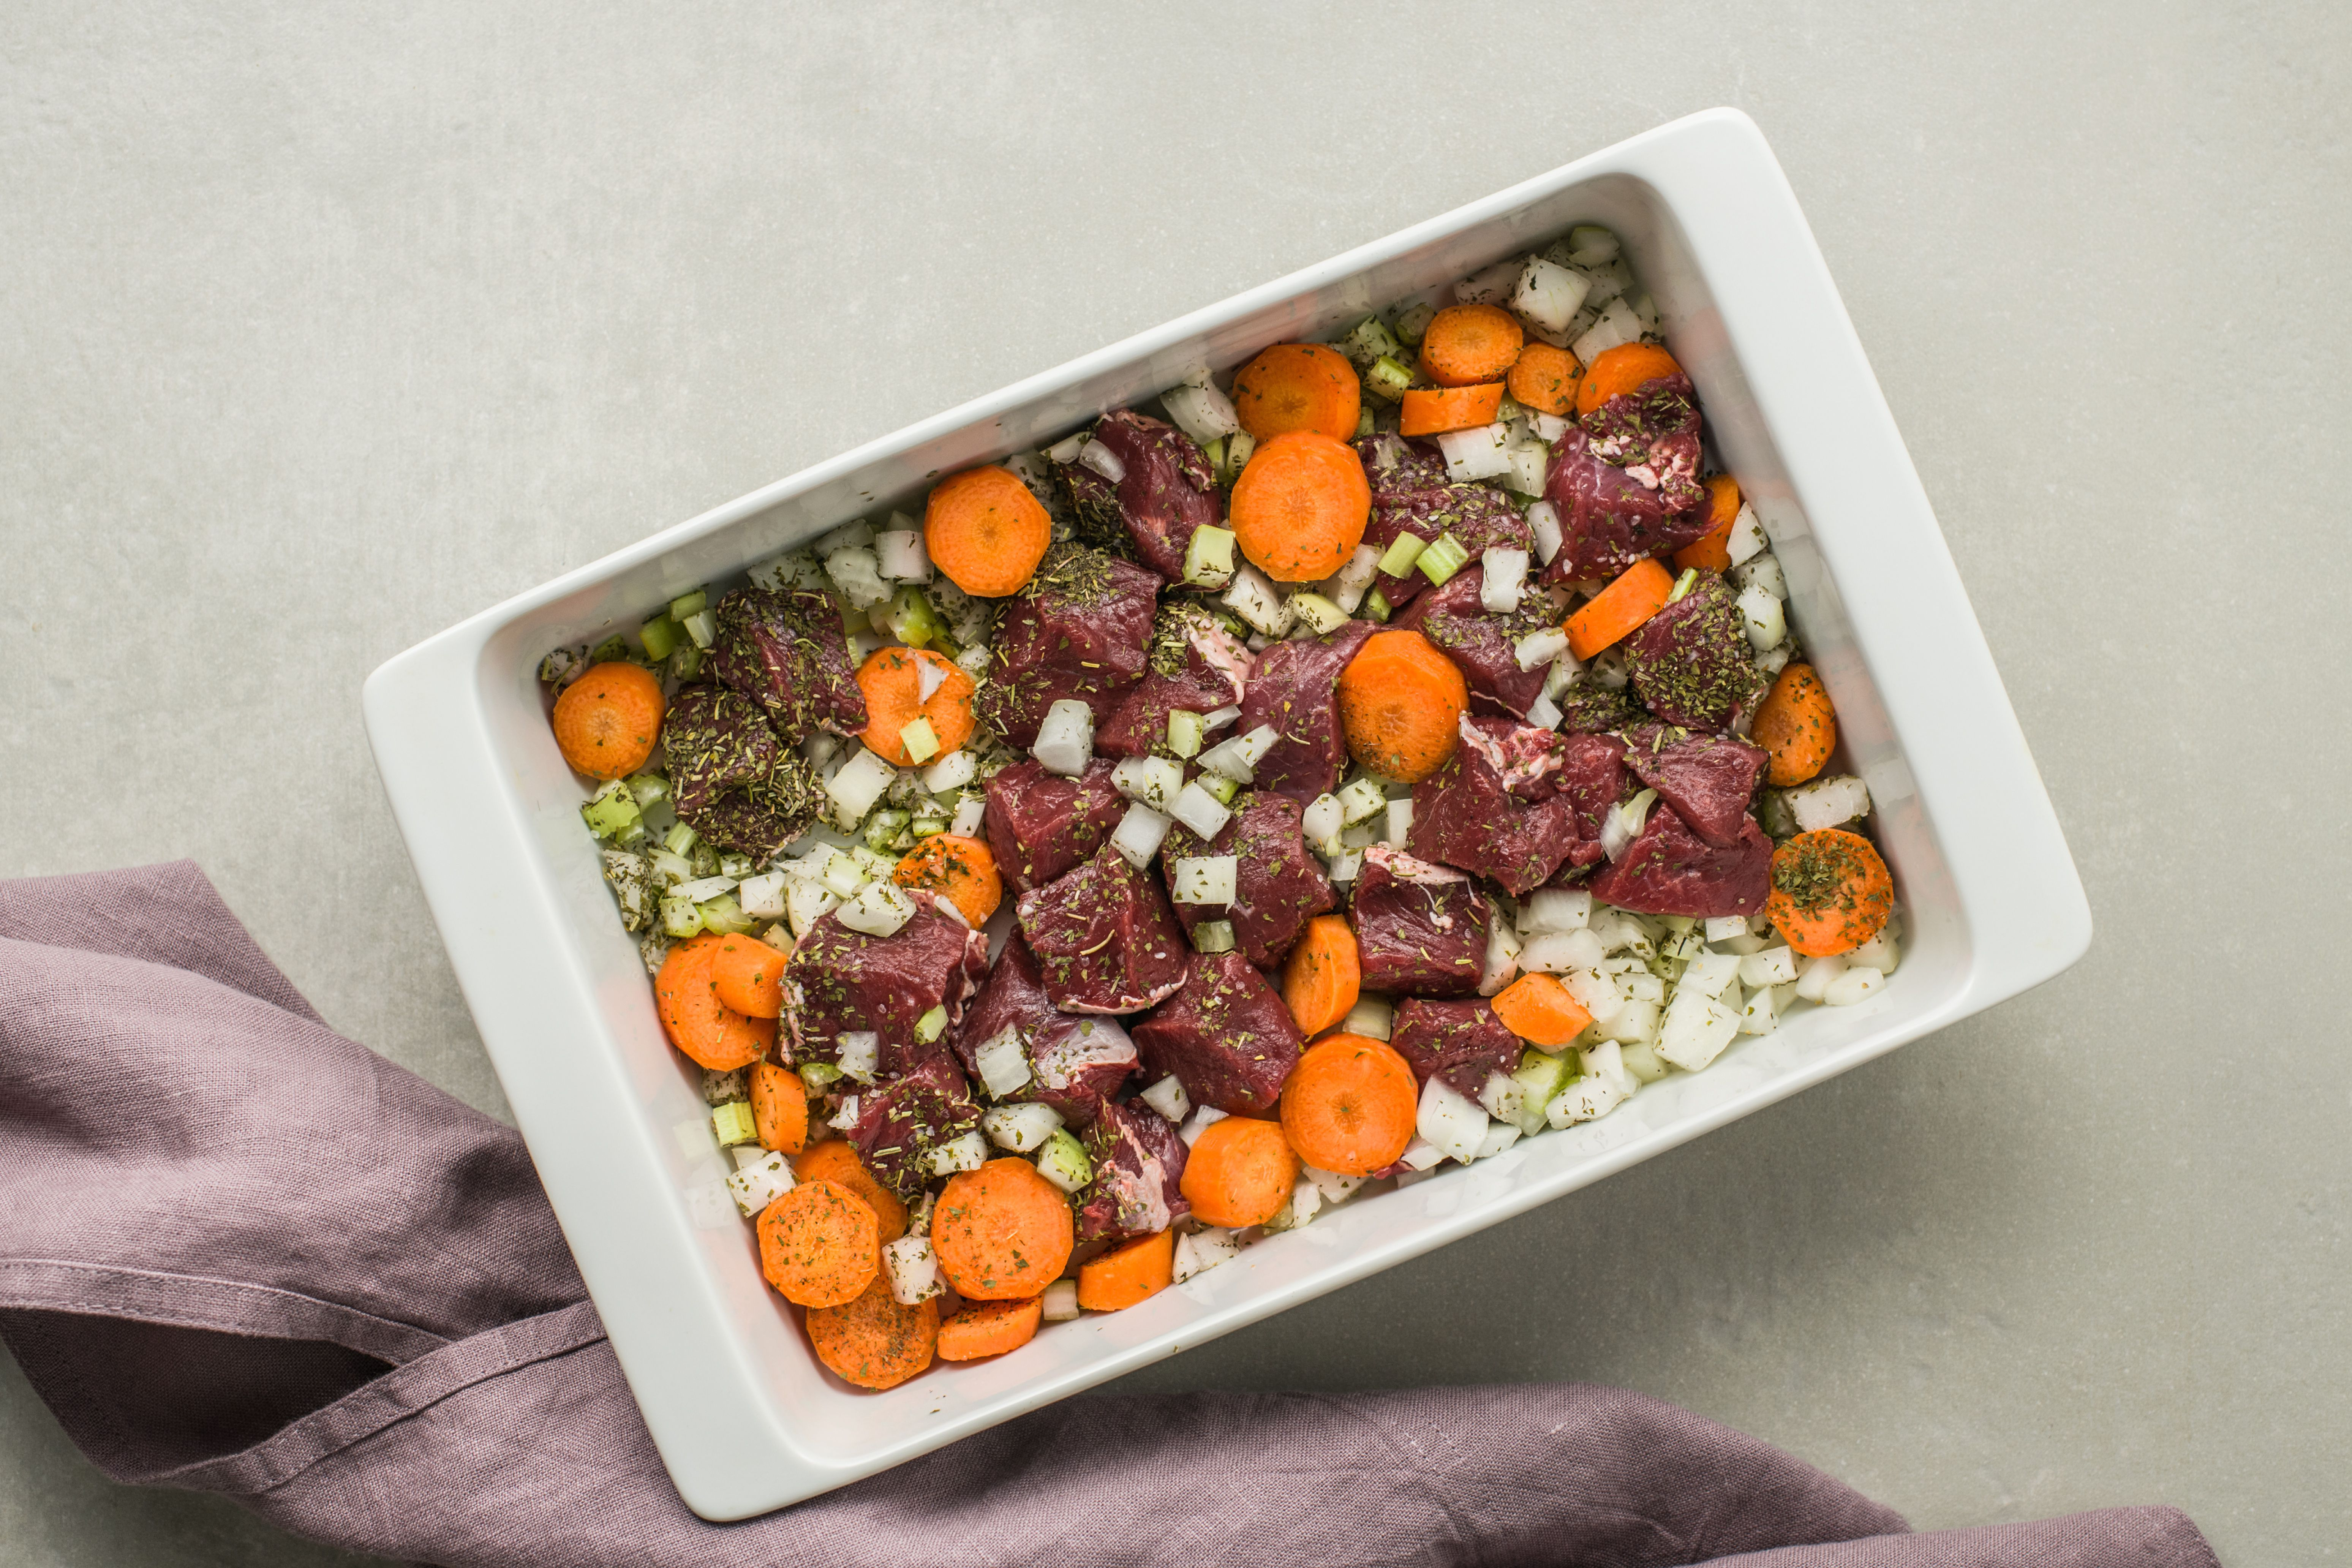 Venison, onions, carrots, celery, and seasonings in a casserole dish